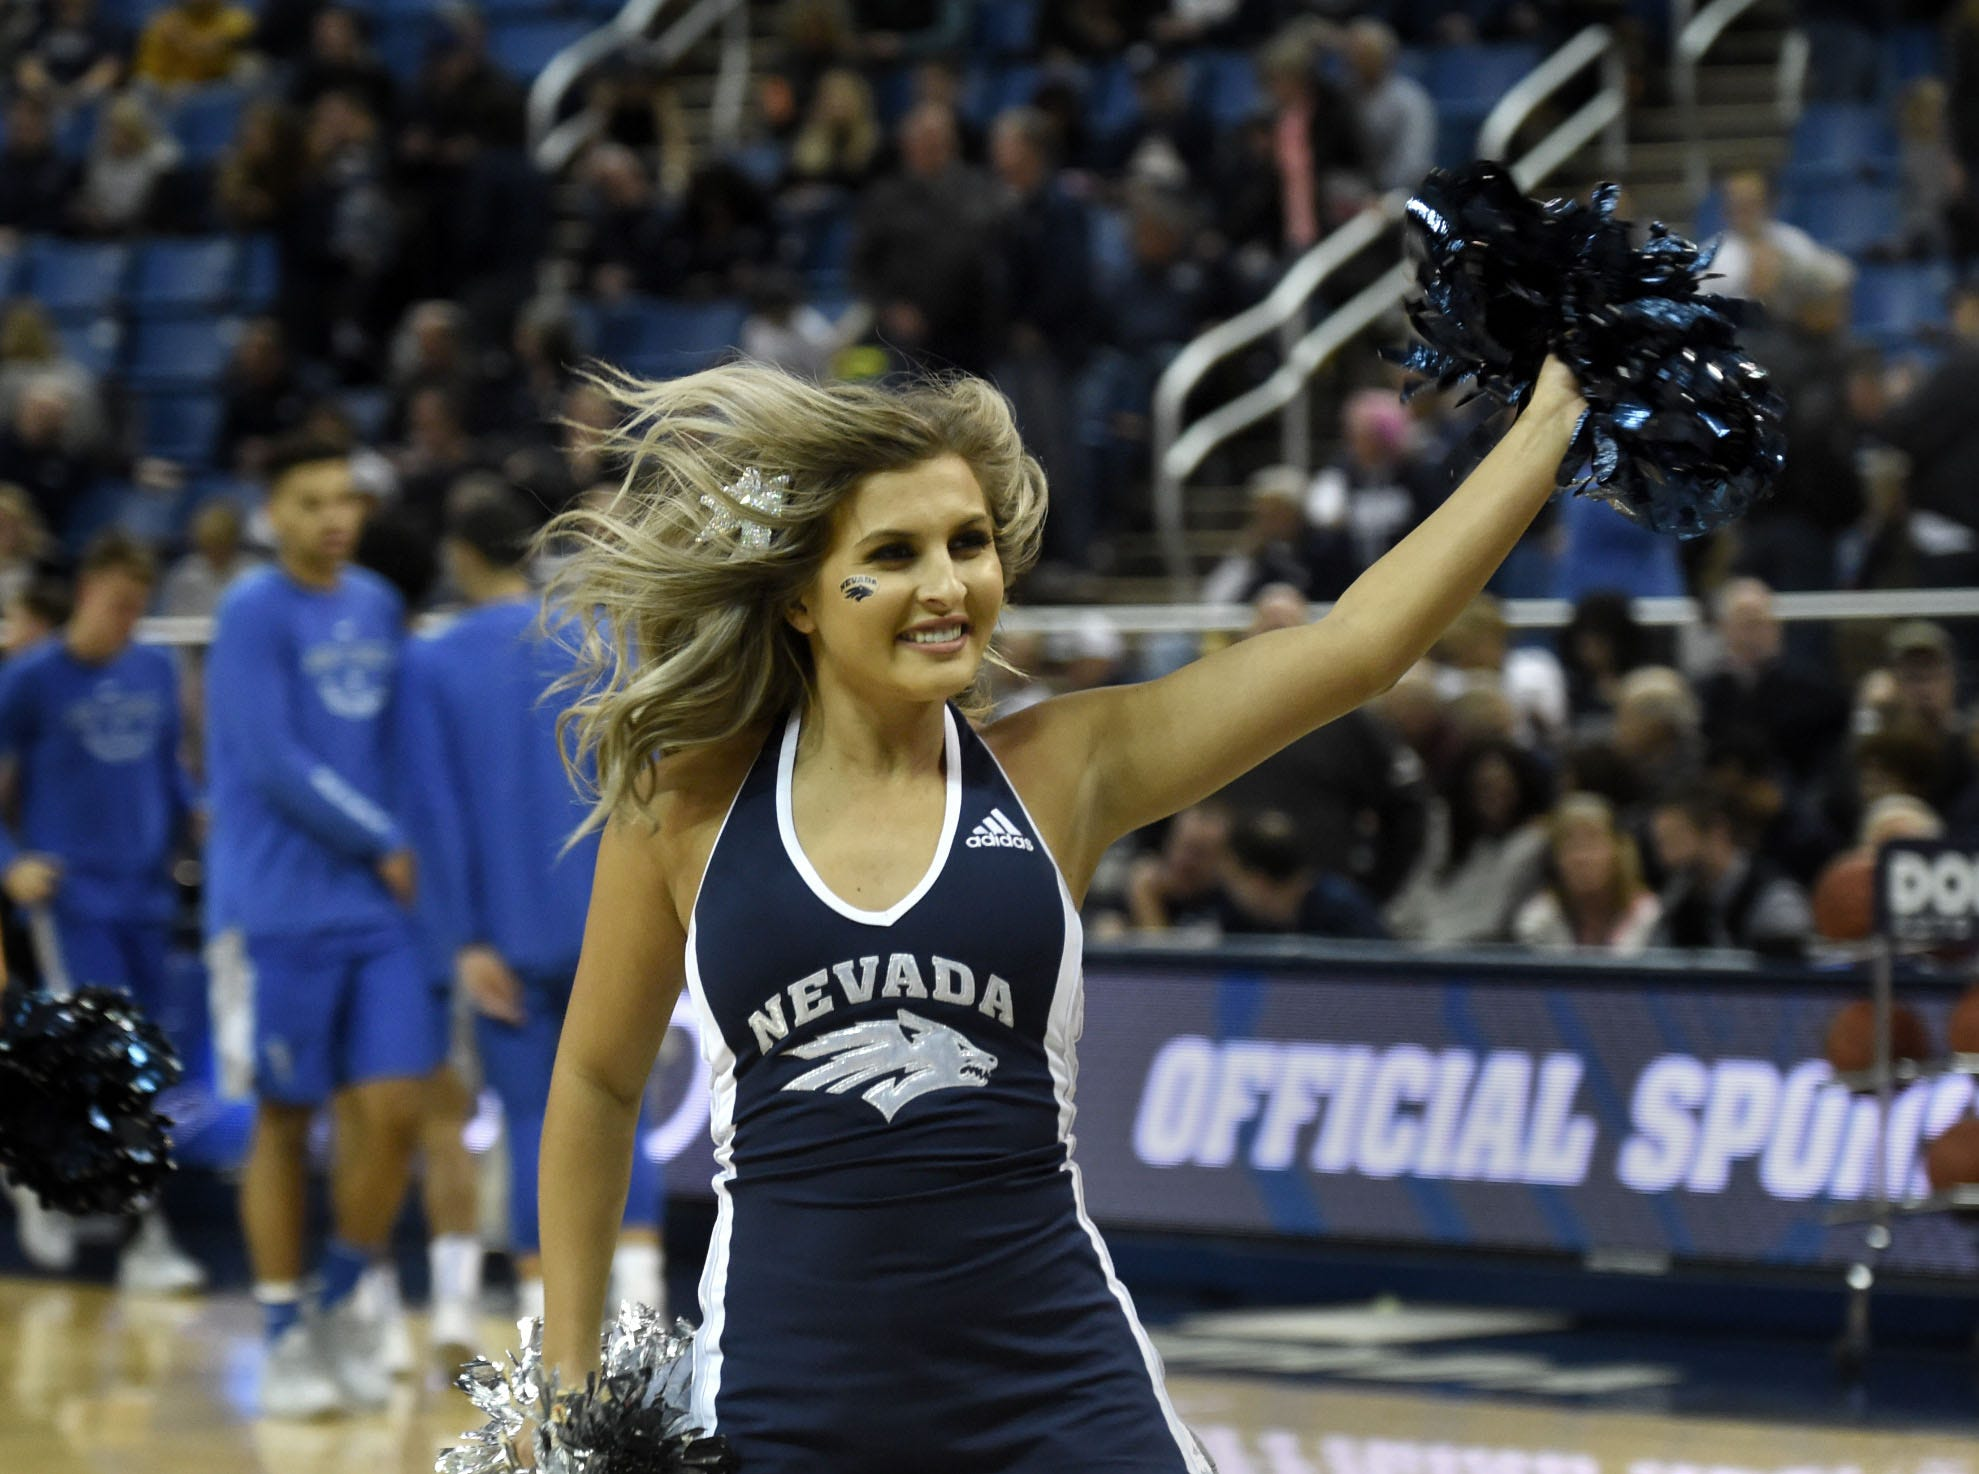 Images from the Air Force at Nevada men's basketball game at Lawlor Events Center on Saturday Jan. 19, 2019.